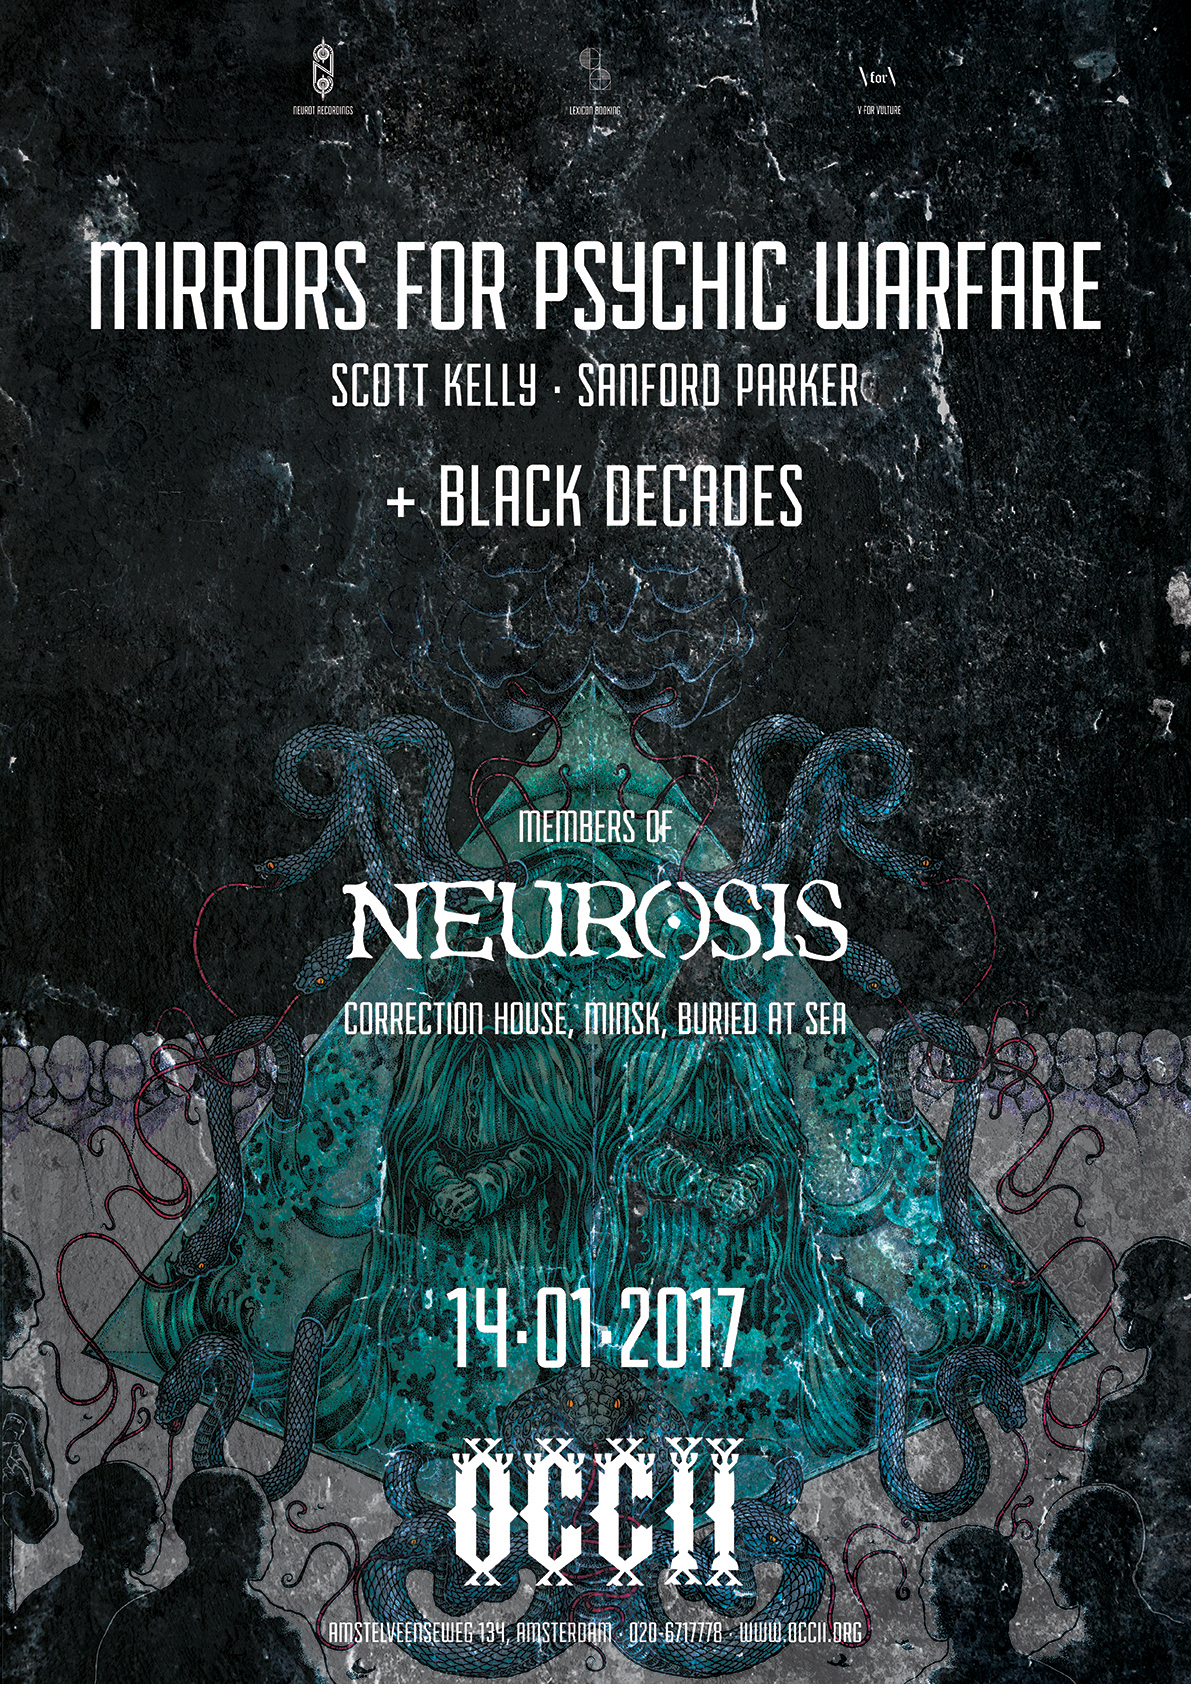 MIRRORS FOR PSYCHIC WARFARE (Scott Kelly // Neurosis & Sanford Parker, US) + BLACK DECADES